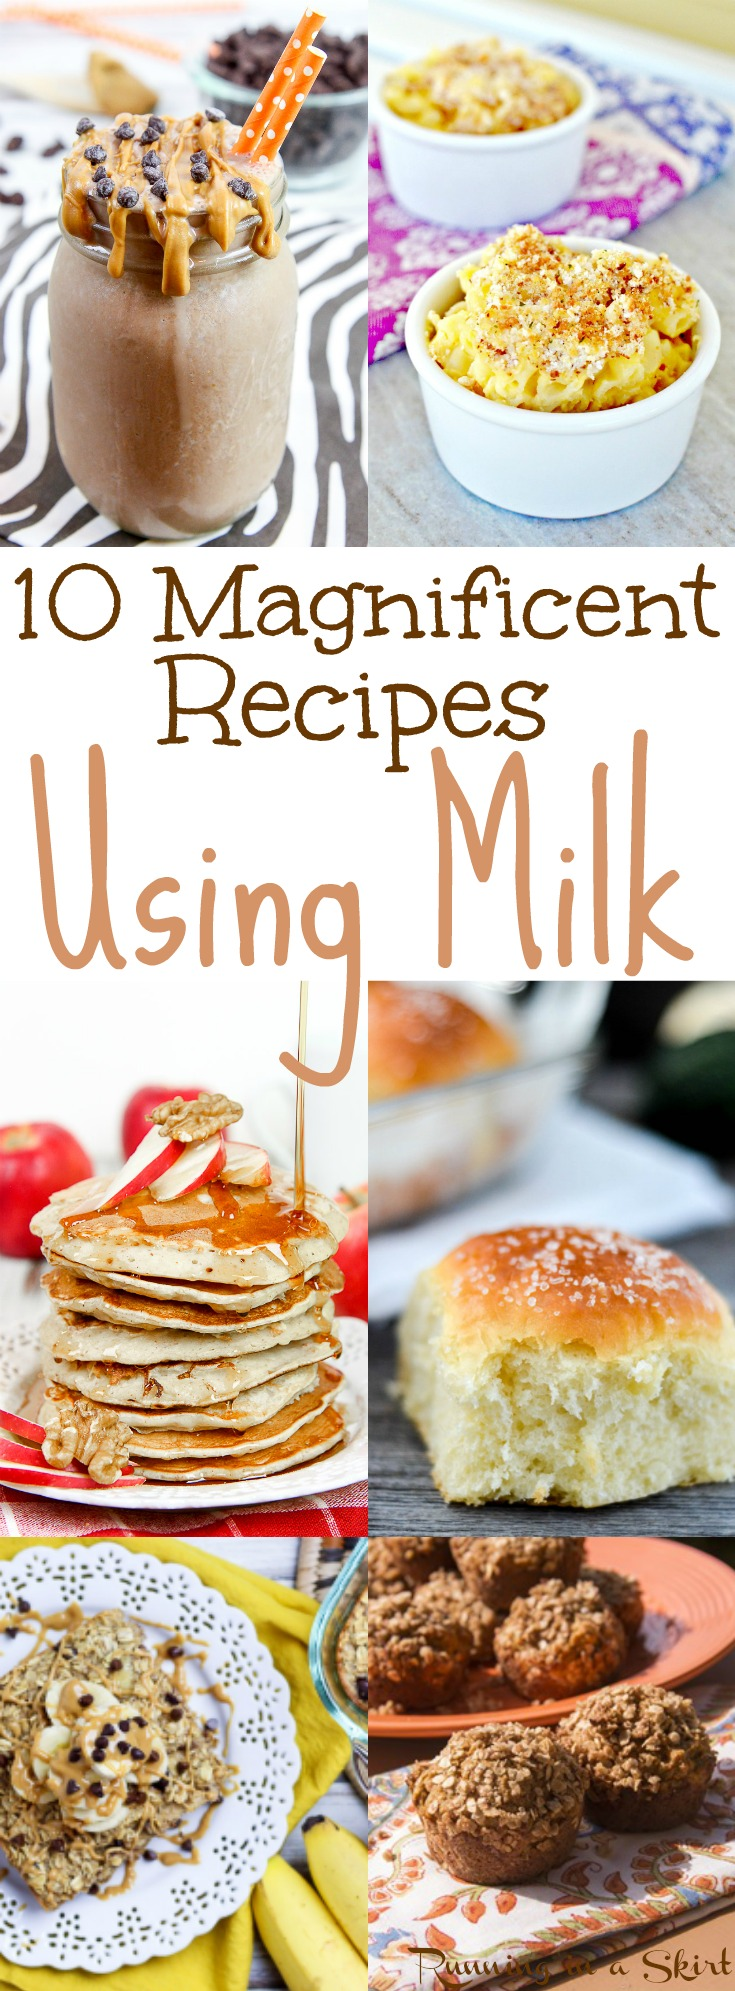 10 Magnificent Recipes Using Milk / Running in a Skirt